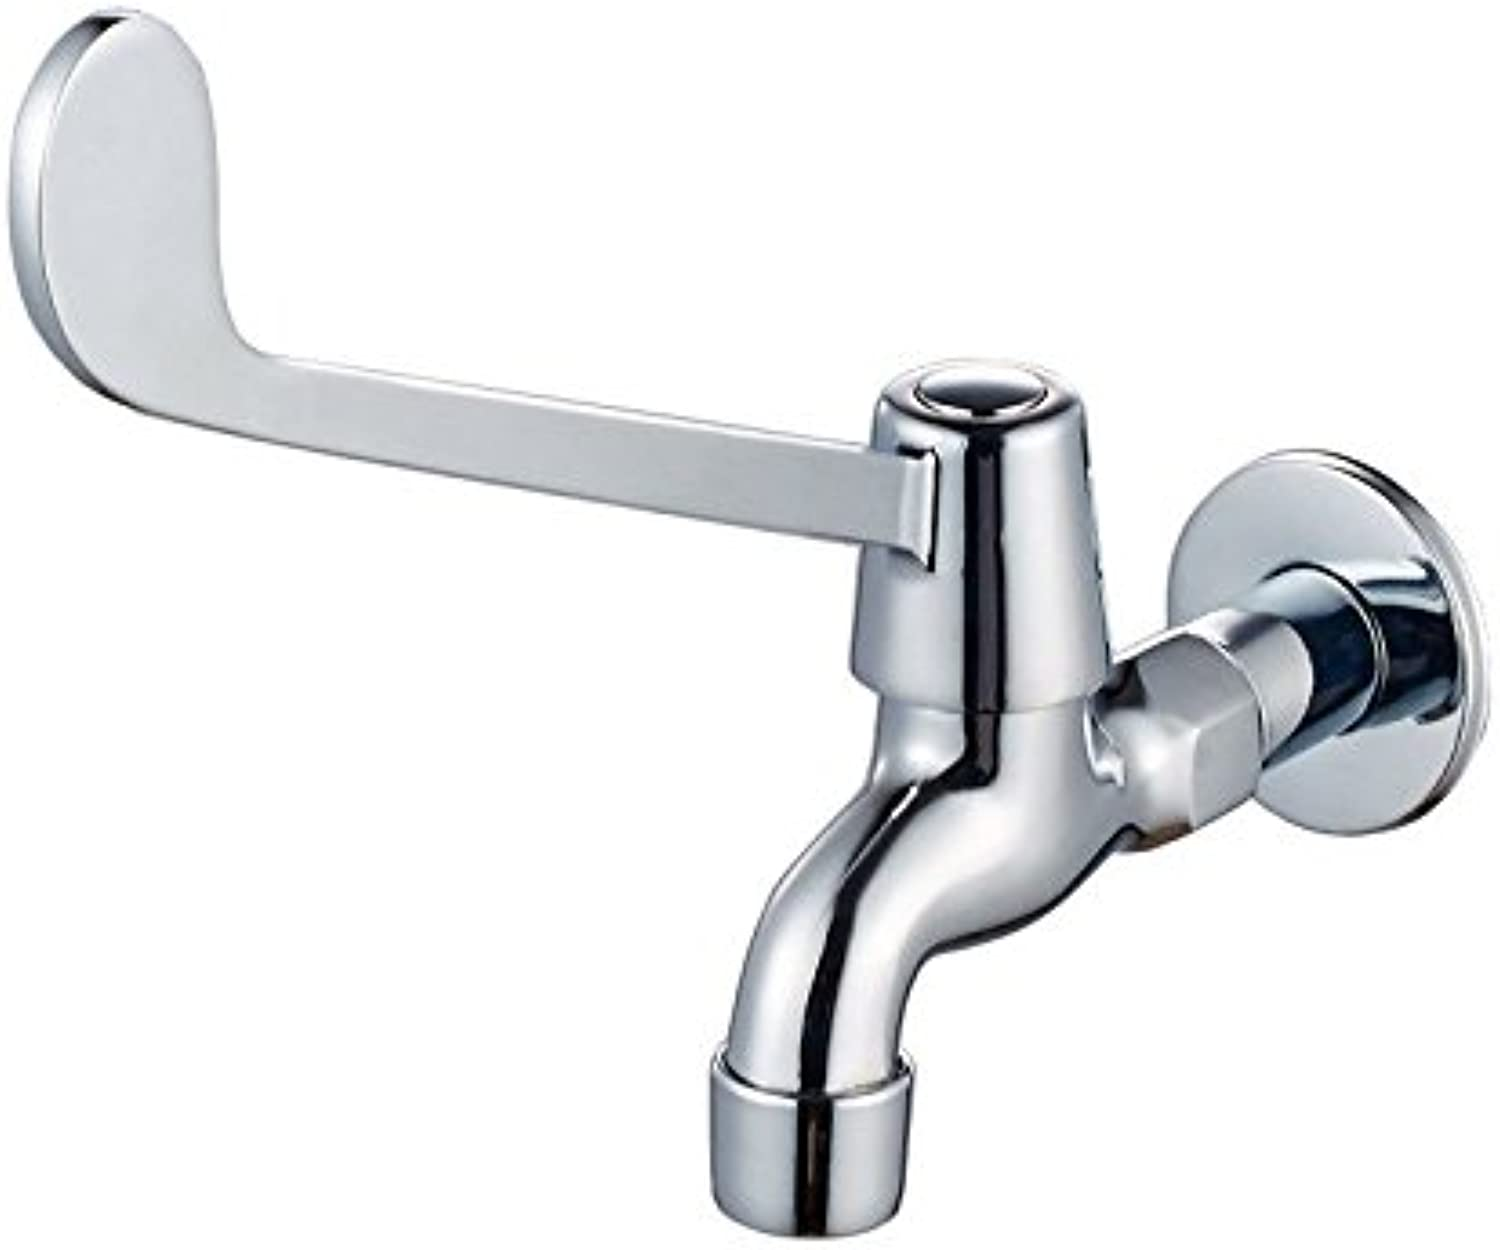 Lalaky Taps Faucet Kitchen Mixer Sink Waterfall Bathroom Mixer Basin Mixer Tap for Kitchen Bathroom and Washroom Full Copper in-Wall Elbow Open Long Handle Elbow Touch